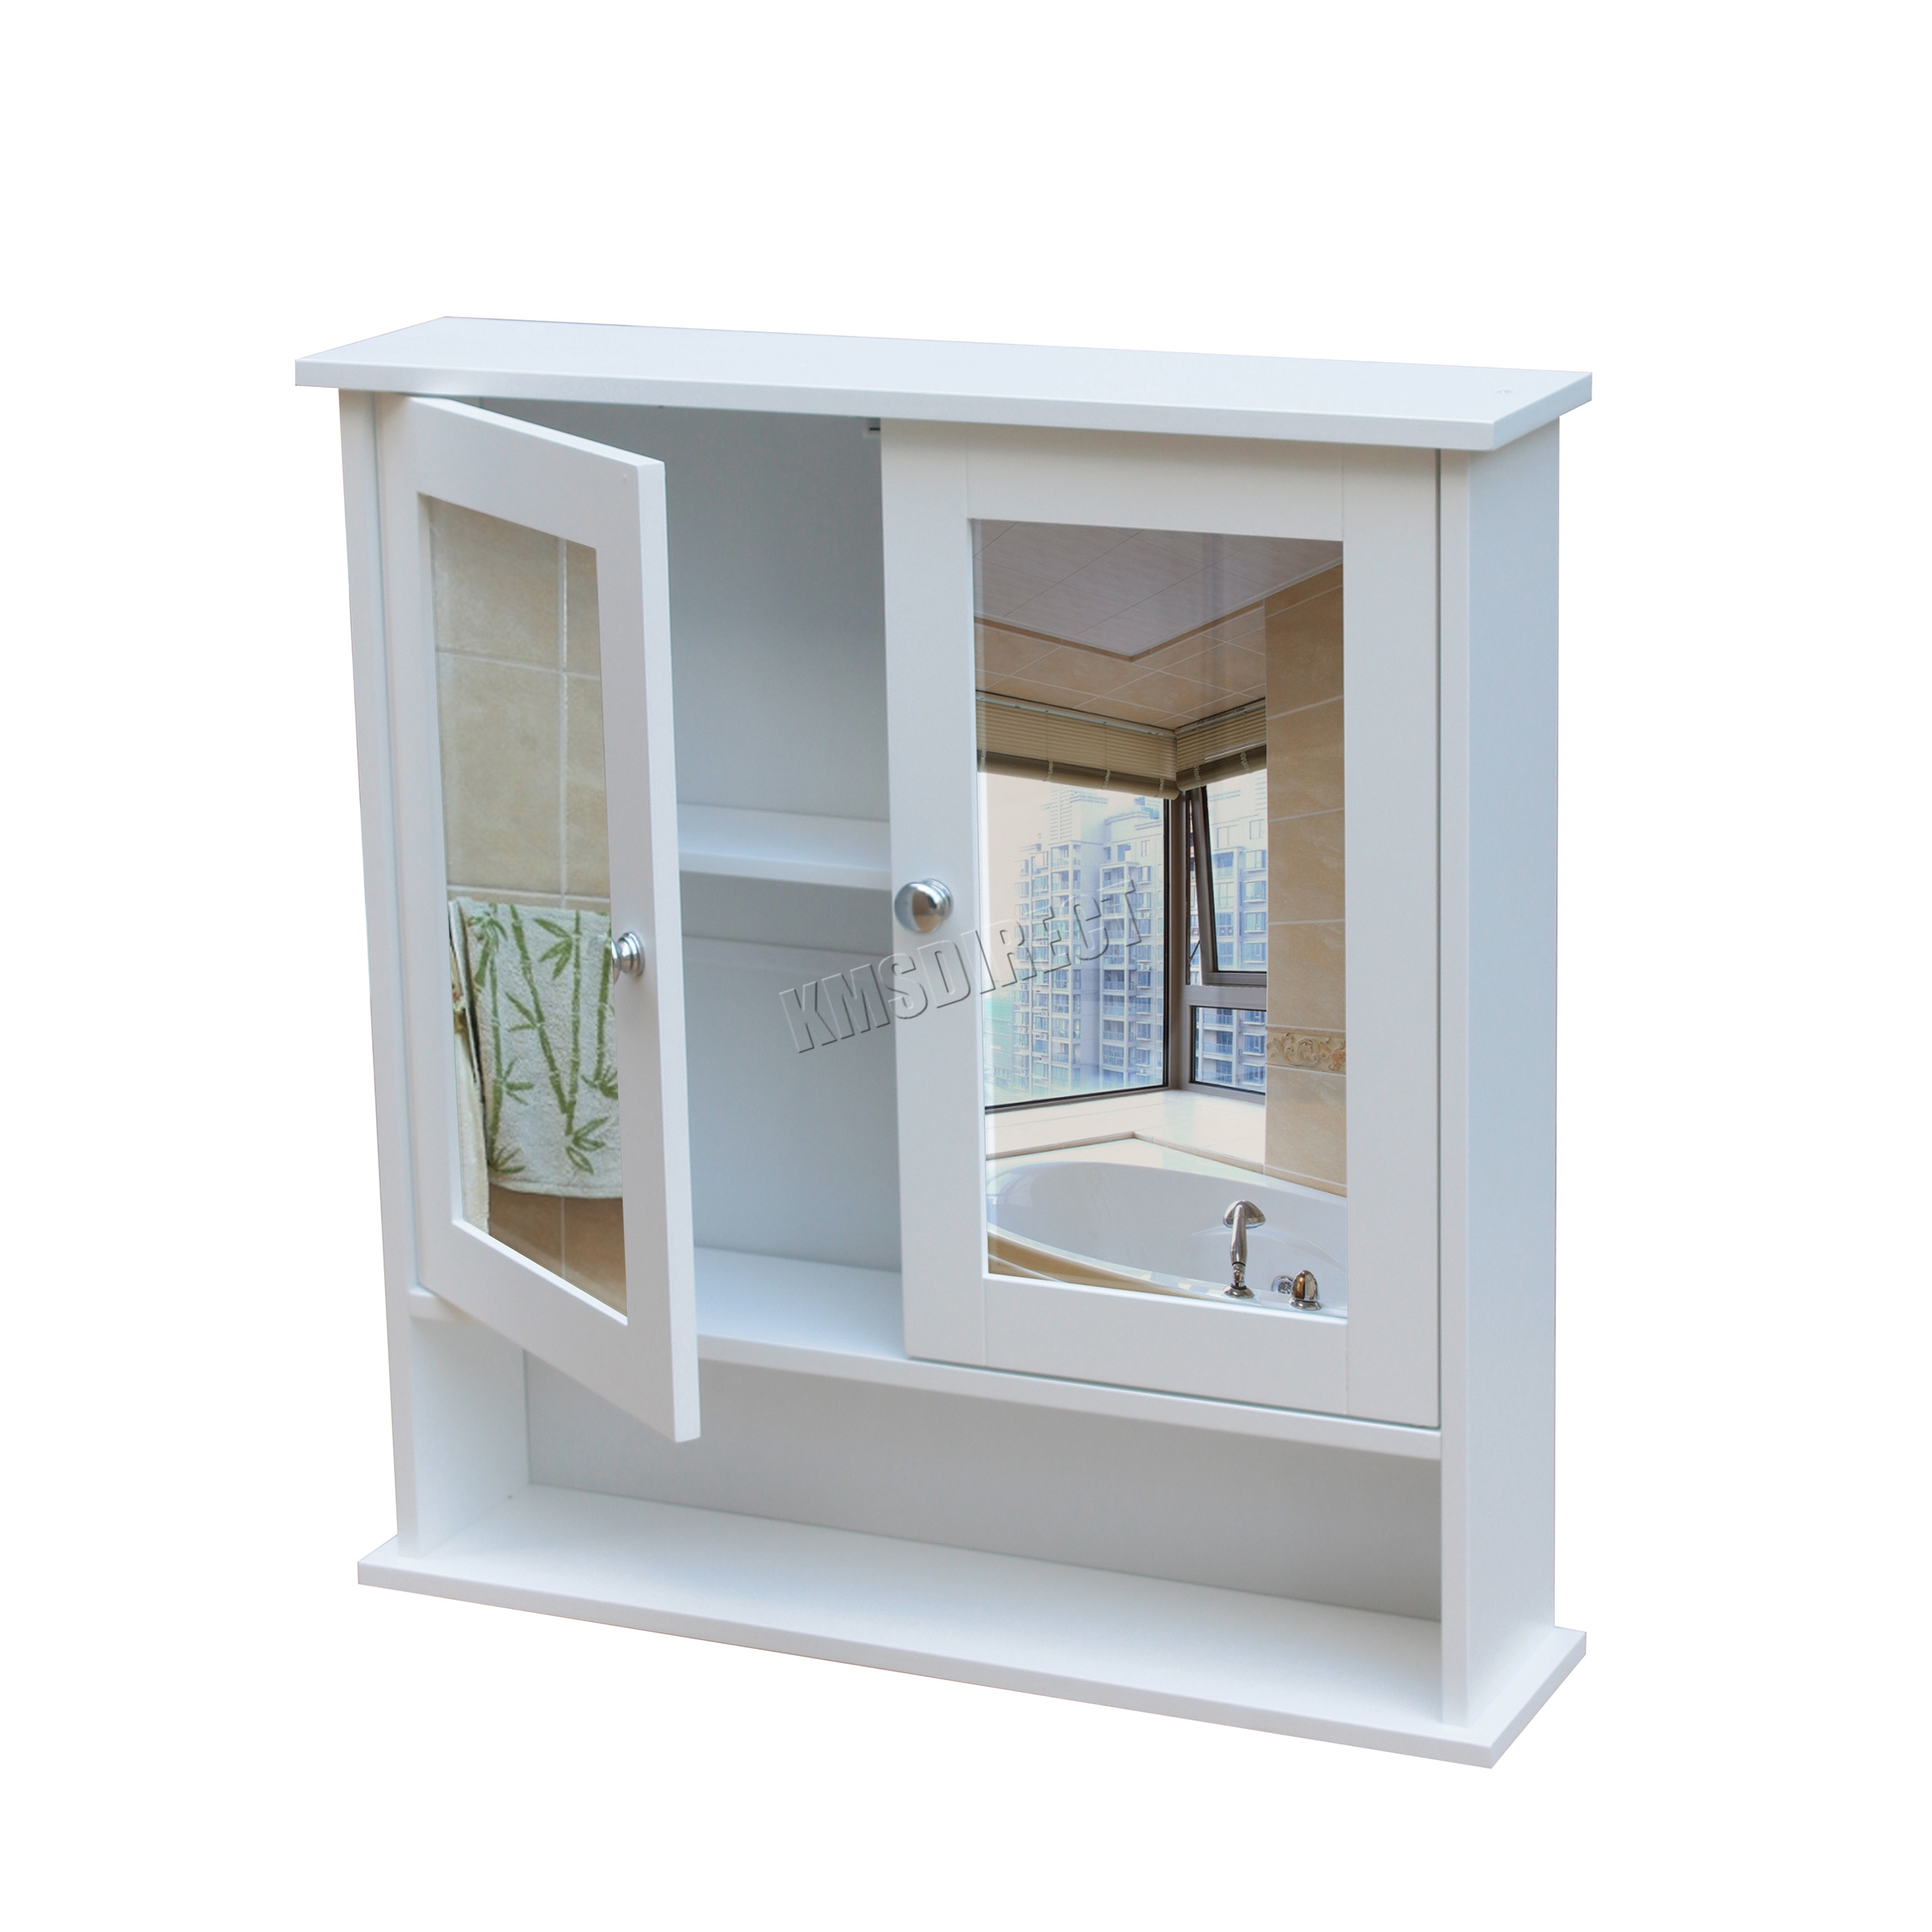 WestWood Wall Mount Mirror Bathroom Cabinet Unit Storage Cupboard ...